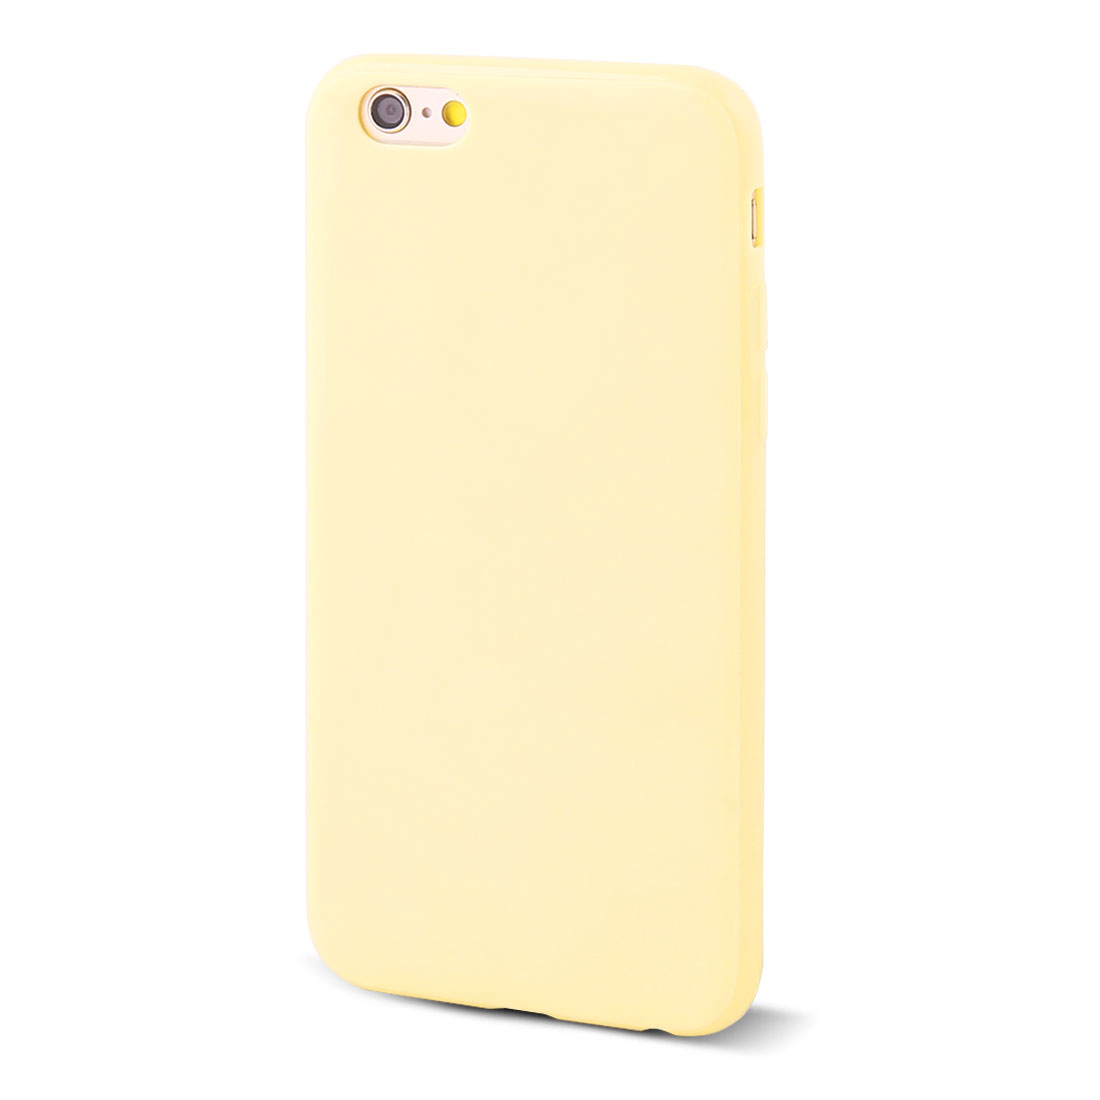 Light Yellow Soft Plastic Smooth Case Cover Protector for Apple iPhone 6G 4.7""